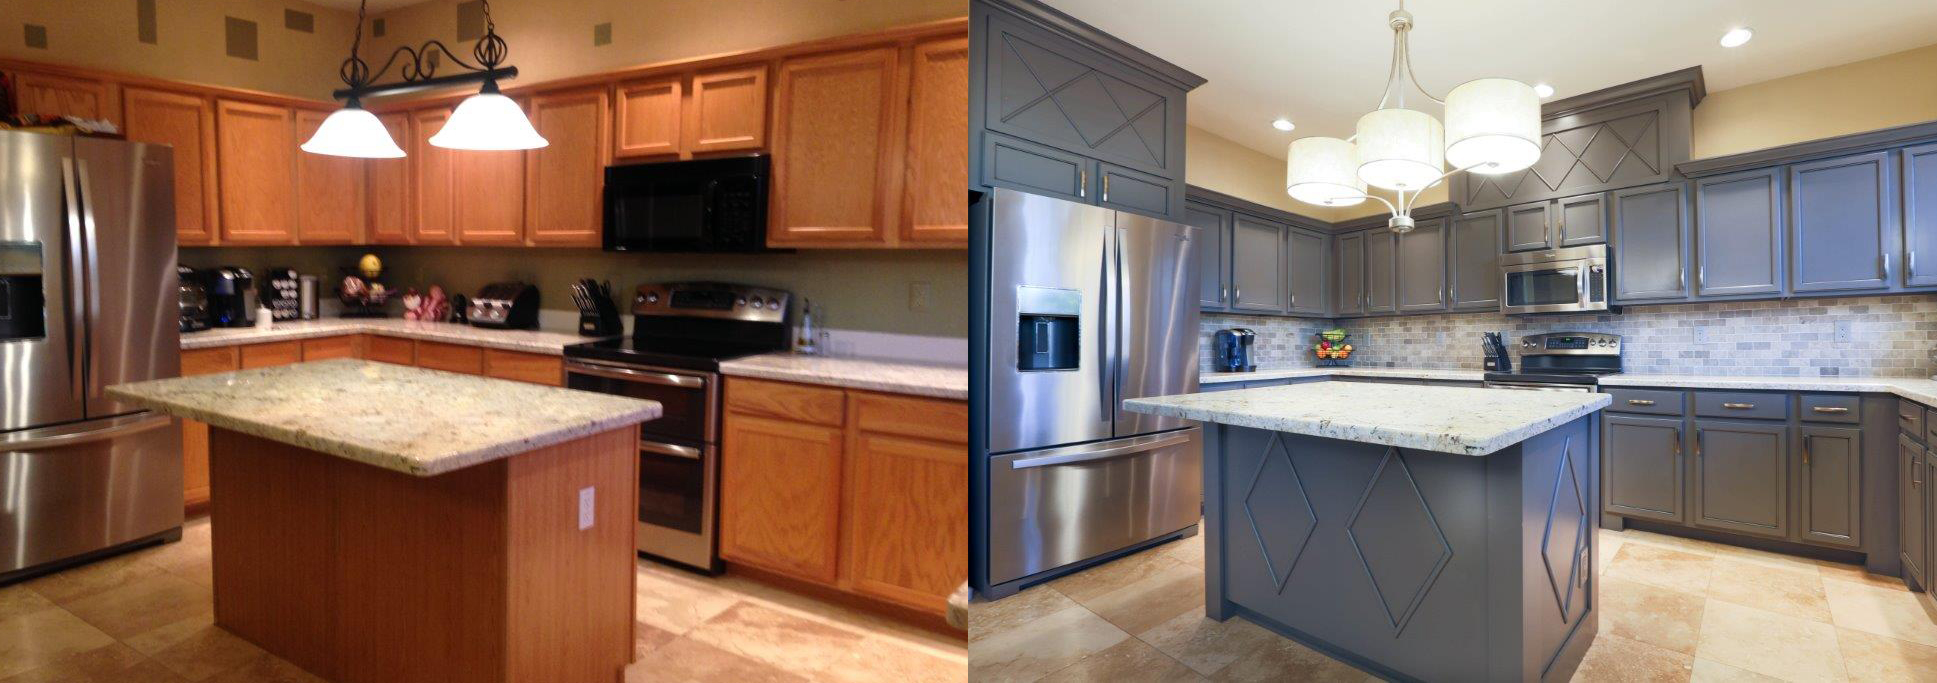 Cabinet Refinishing Phoenix AZ Tempe Arizona Kitchens Bathrooms - Refurbish kitchen cabinets